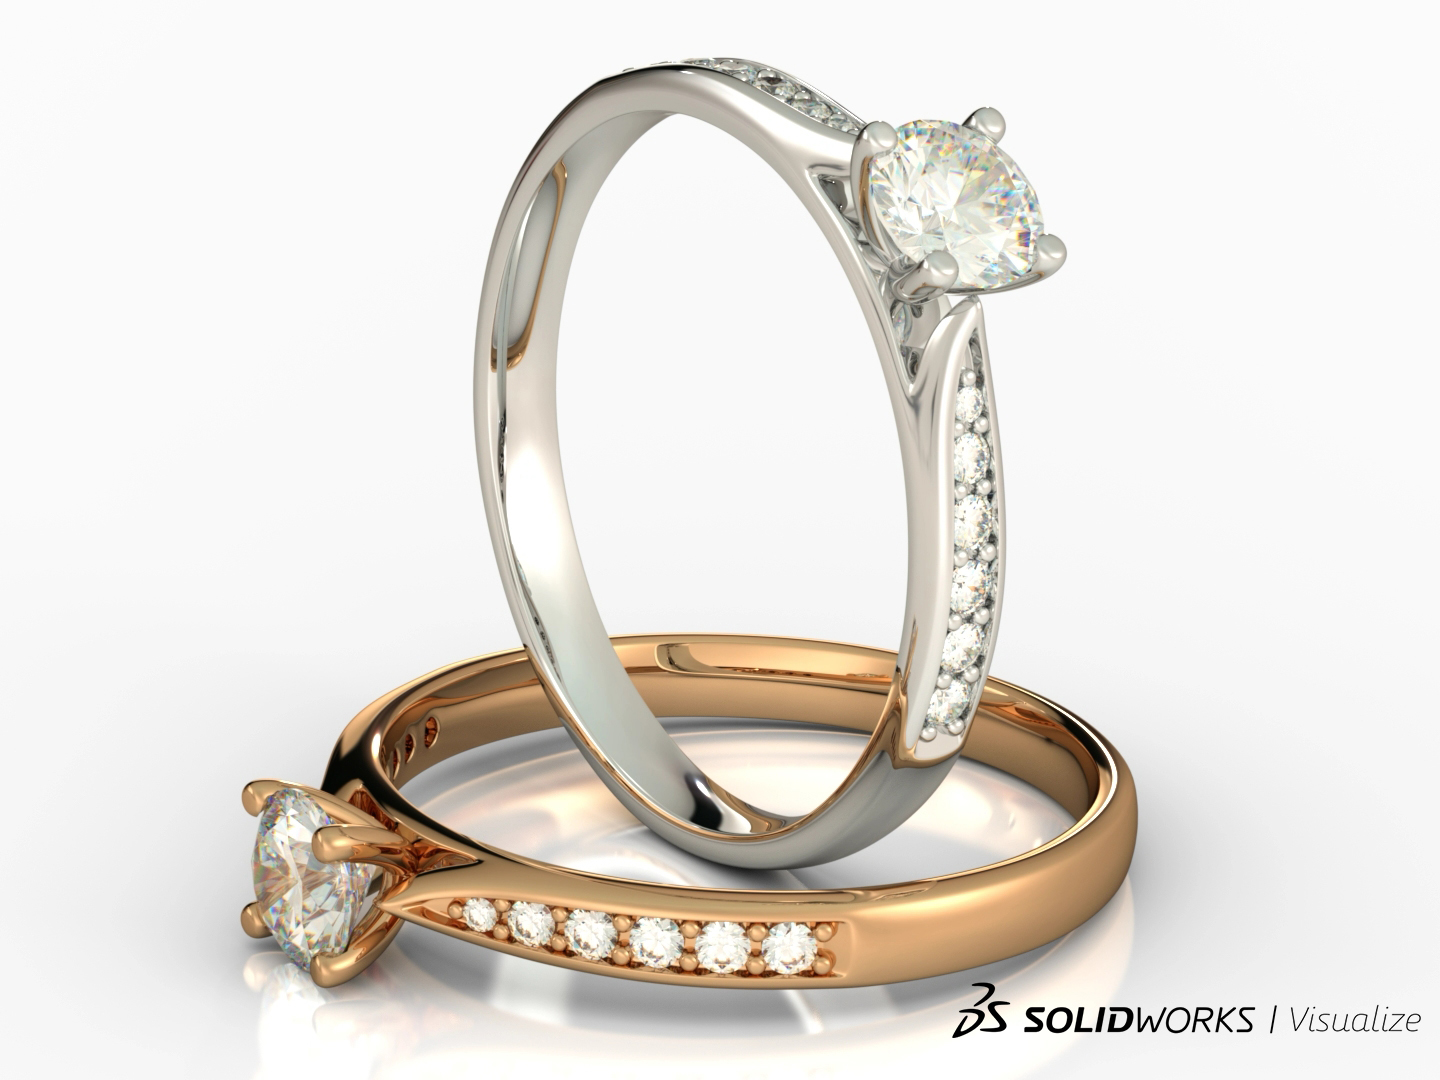 SW Visualize_jewelry-6